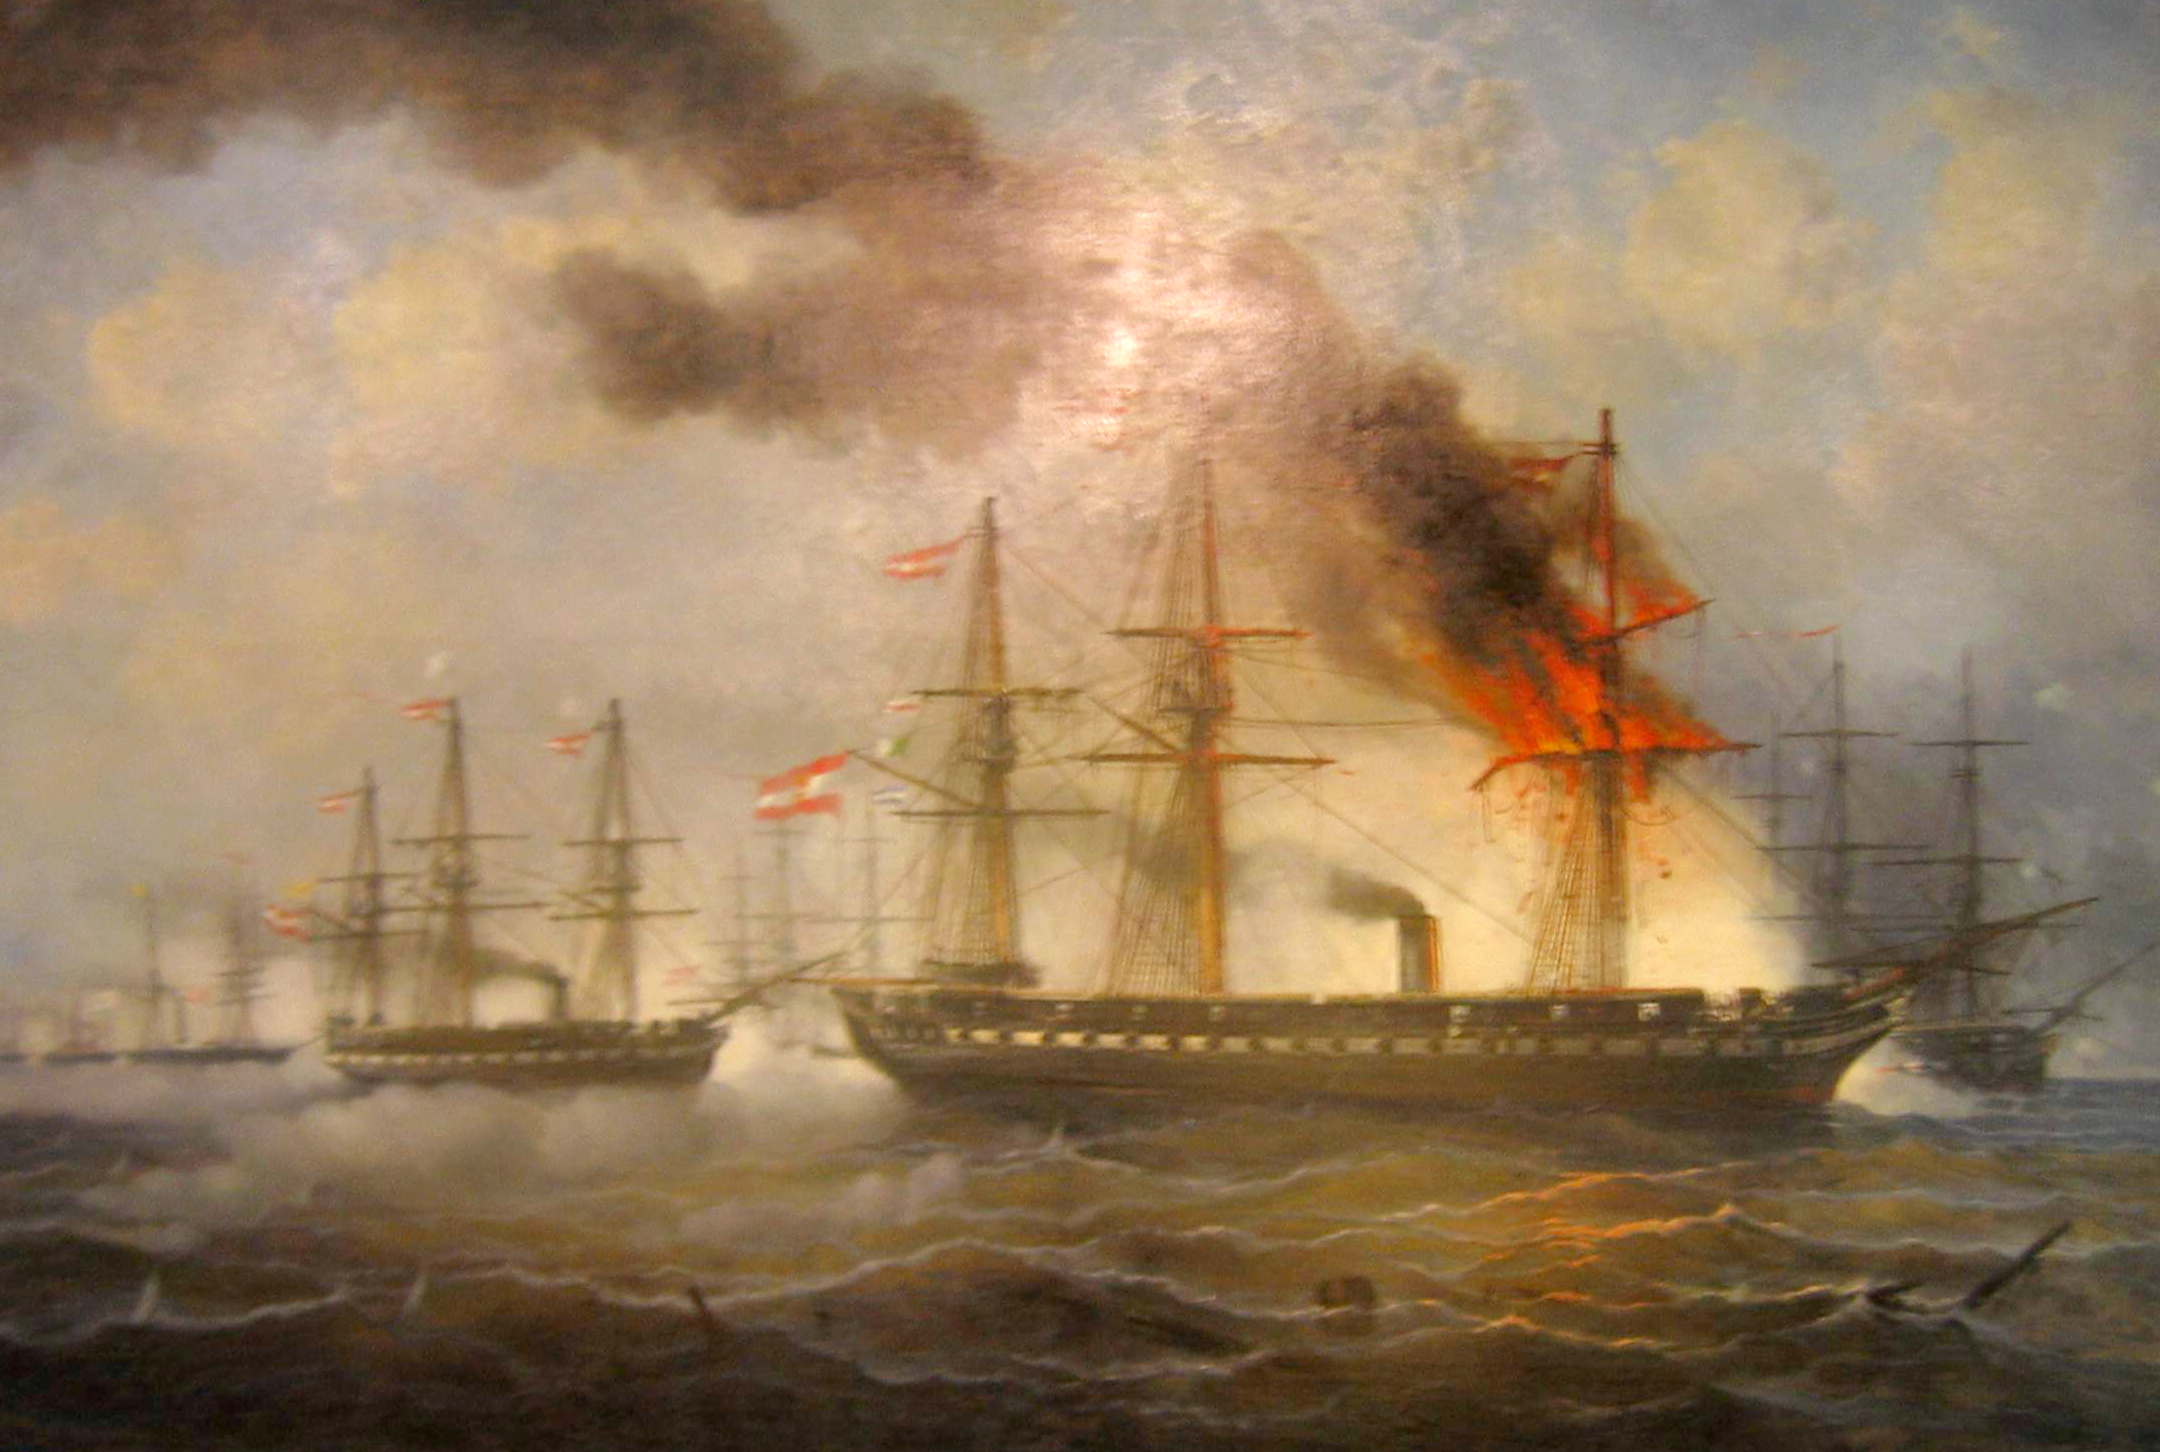 Original file ‎ (2,160 × 1,452 pixels, file size: 7.41 MB, MIME ...: commons.wikimedia.org/wiki/file:battle_of_helgoland_1864.png